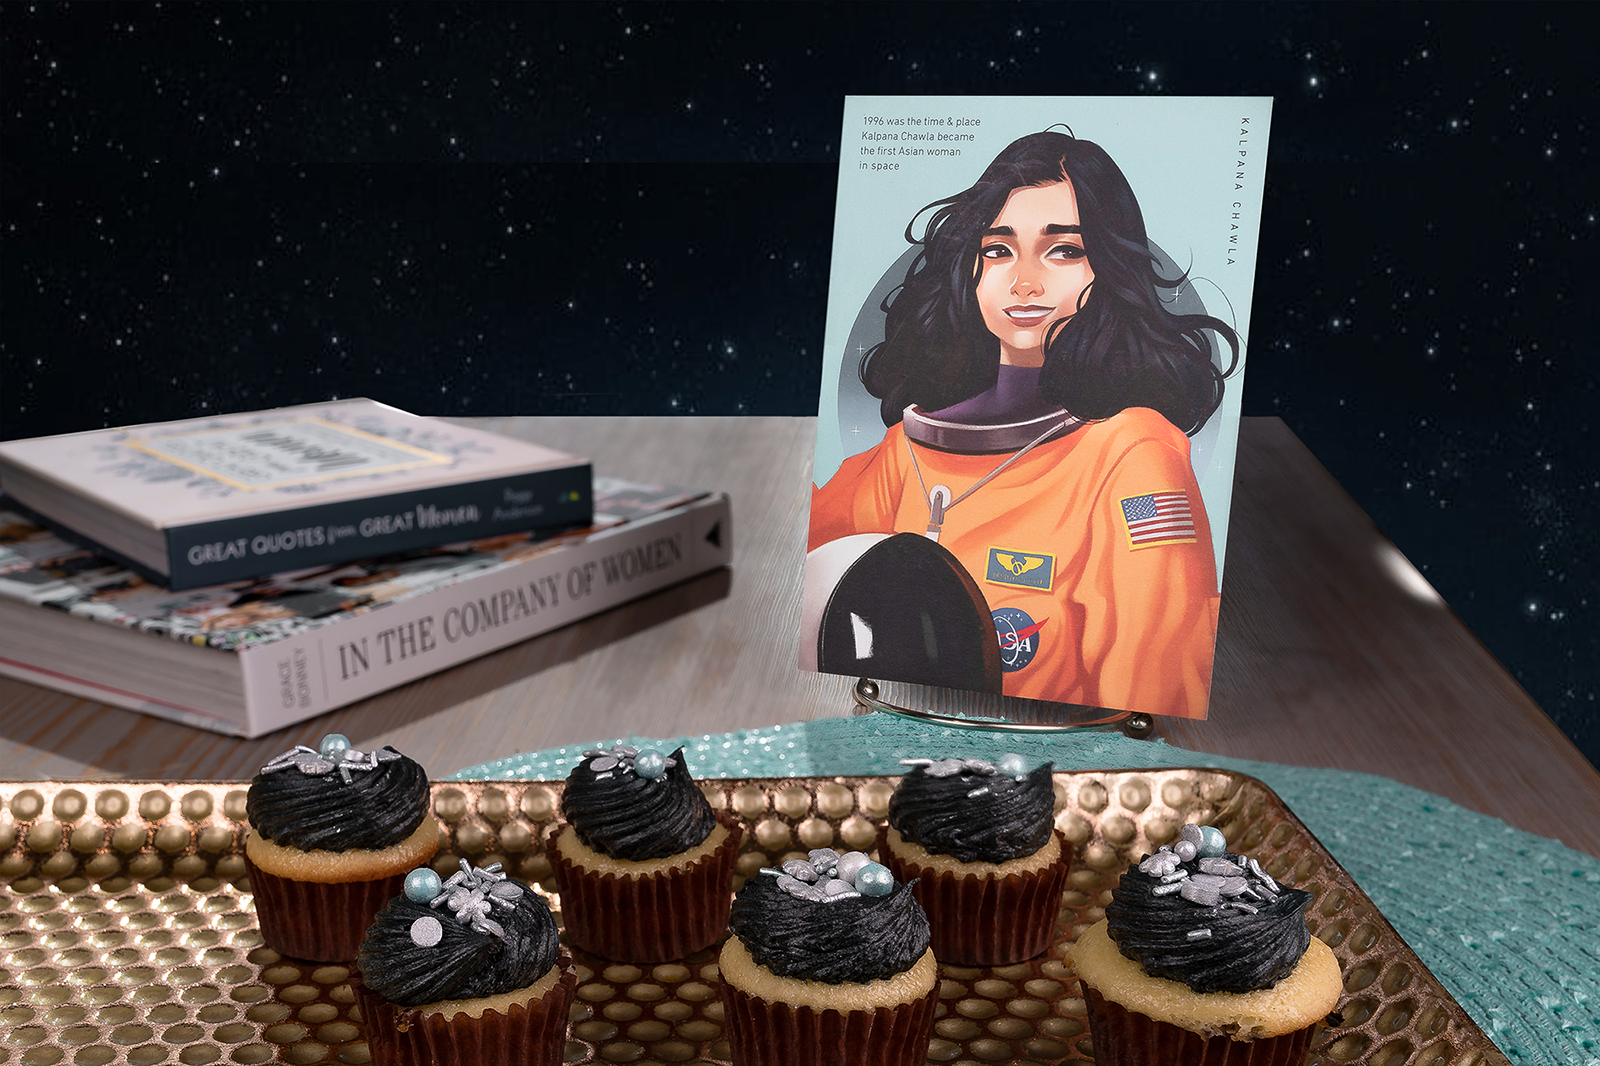 Hello Prosper Kalpana Chawla postcard with space themed cupcakes